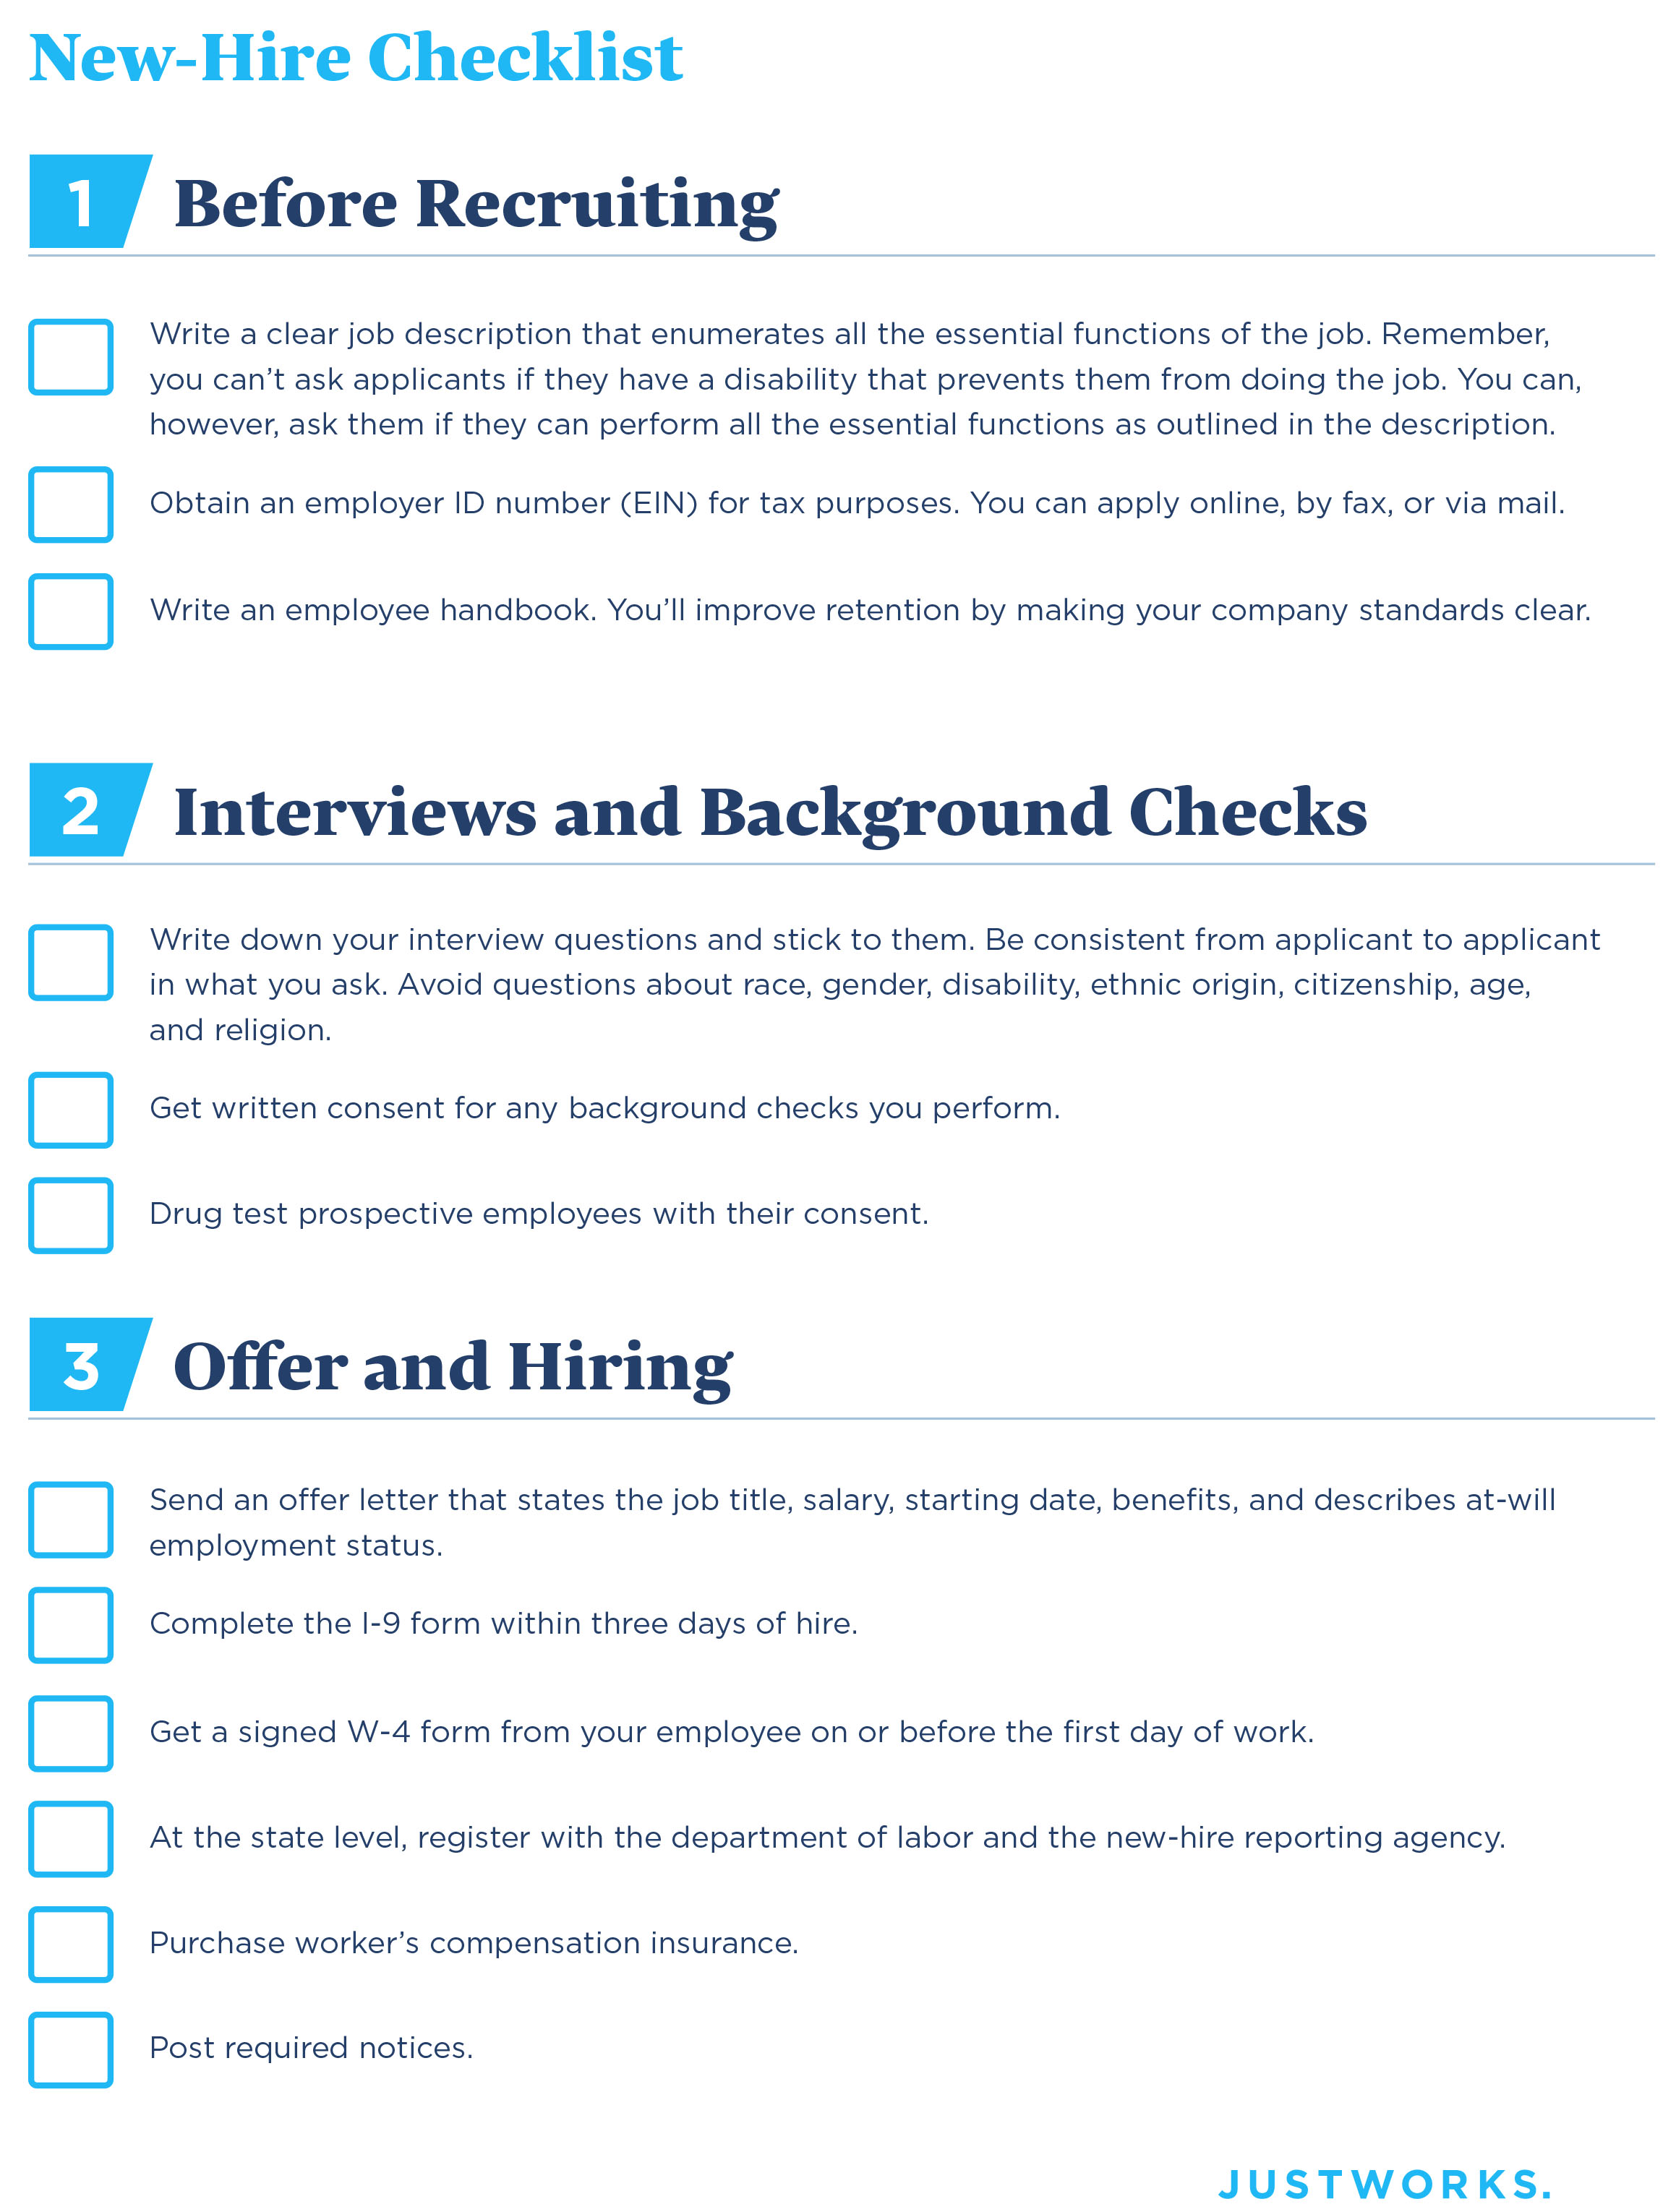 New-Hire_Checklist-OnePager-2.jpg